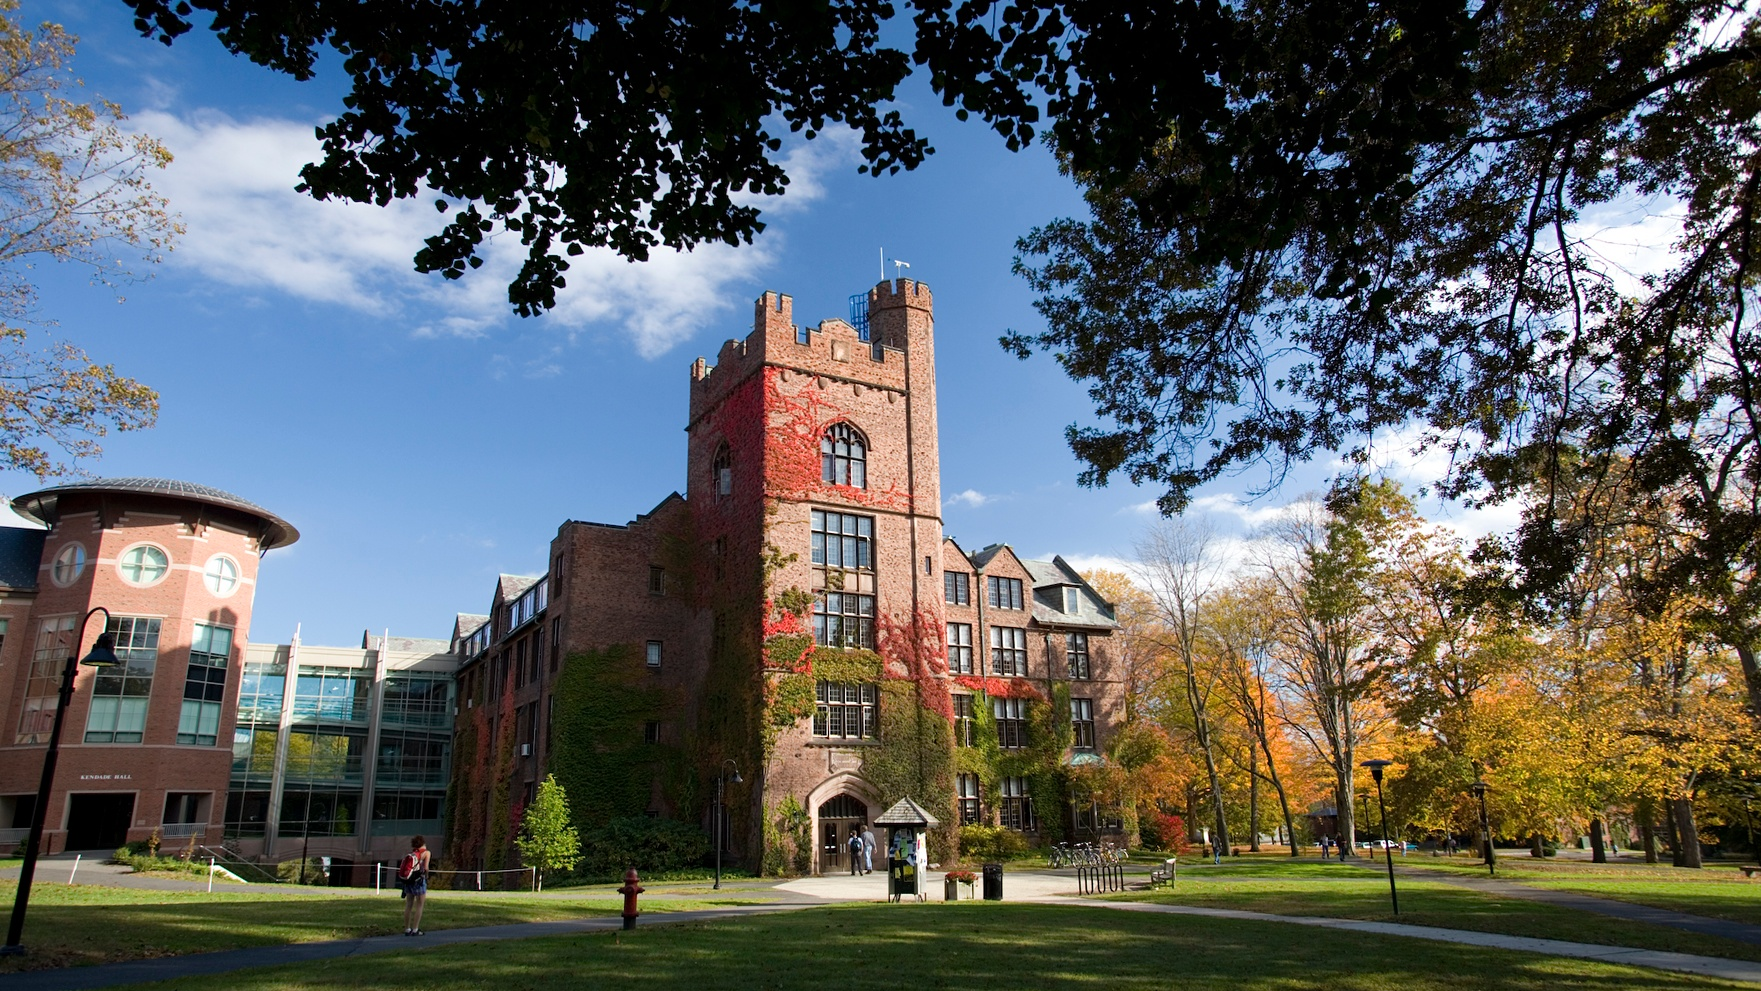 Why I chose Mount Holyoke